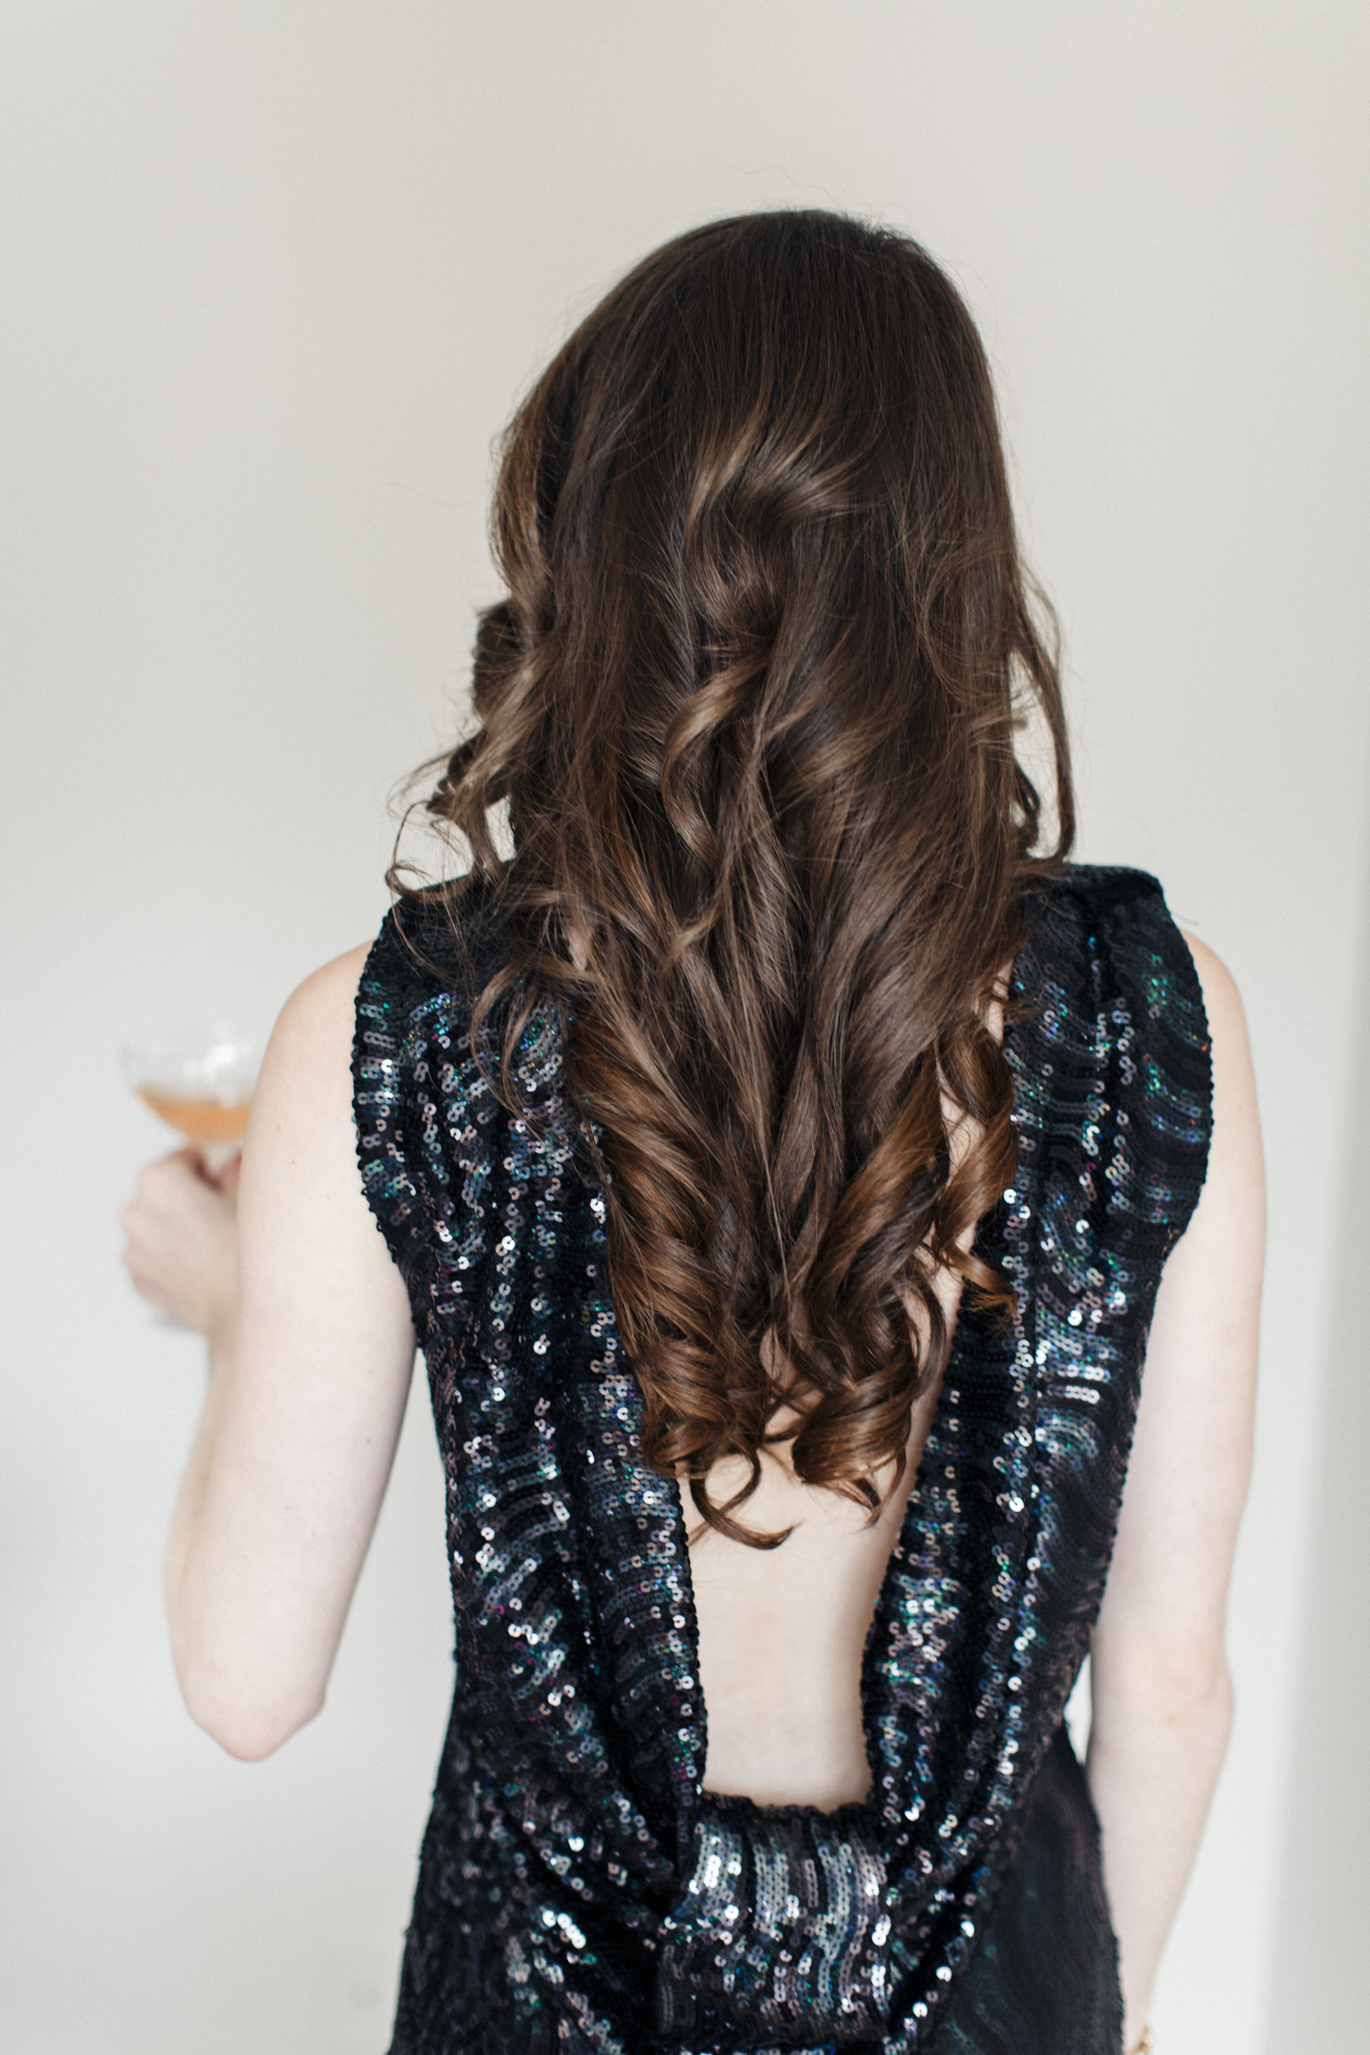 New Years Eve hairstyle ideas